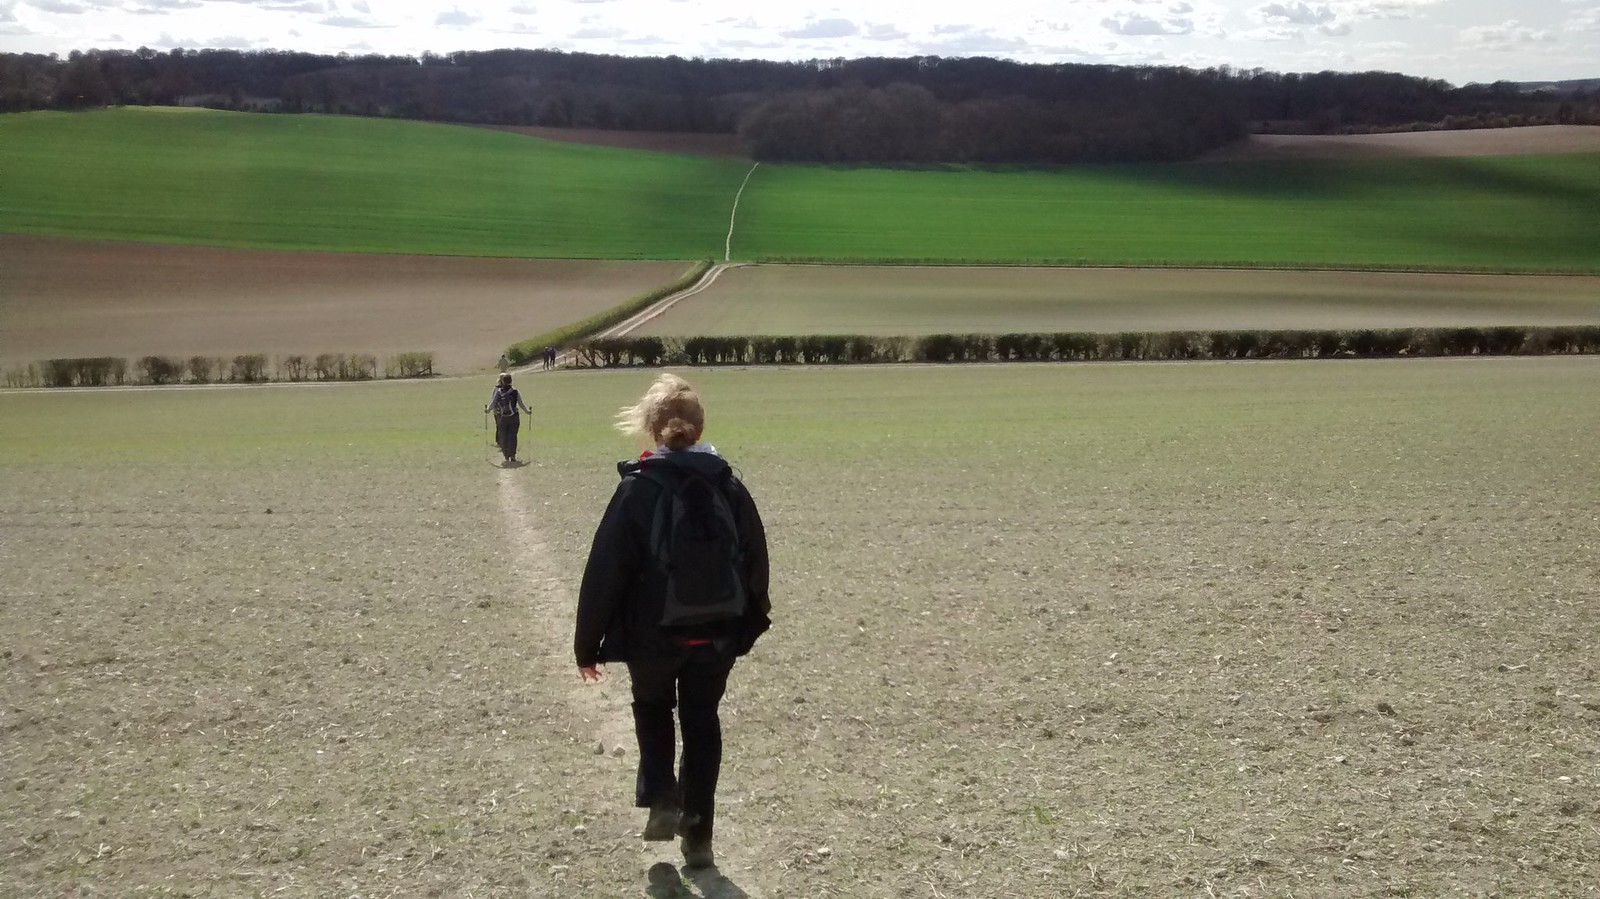 Wye Circular 11th April 2015 The journey home